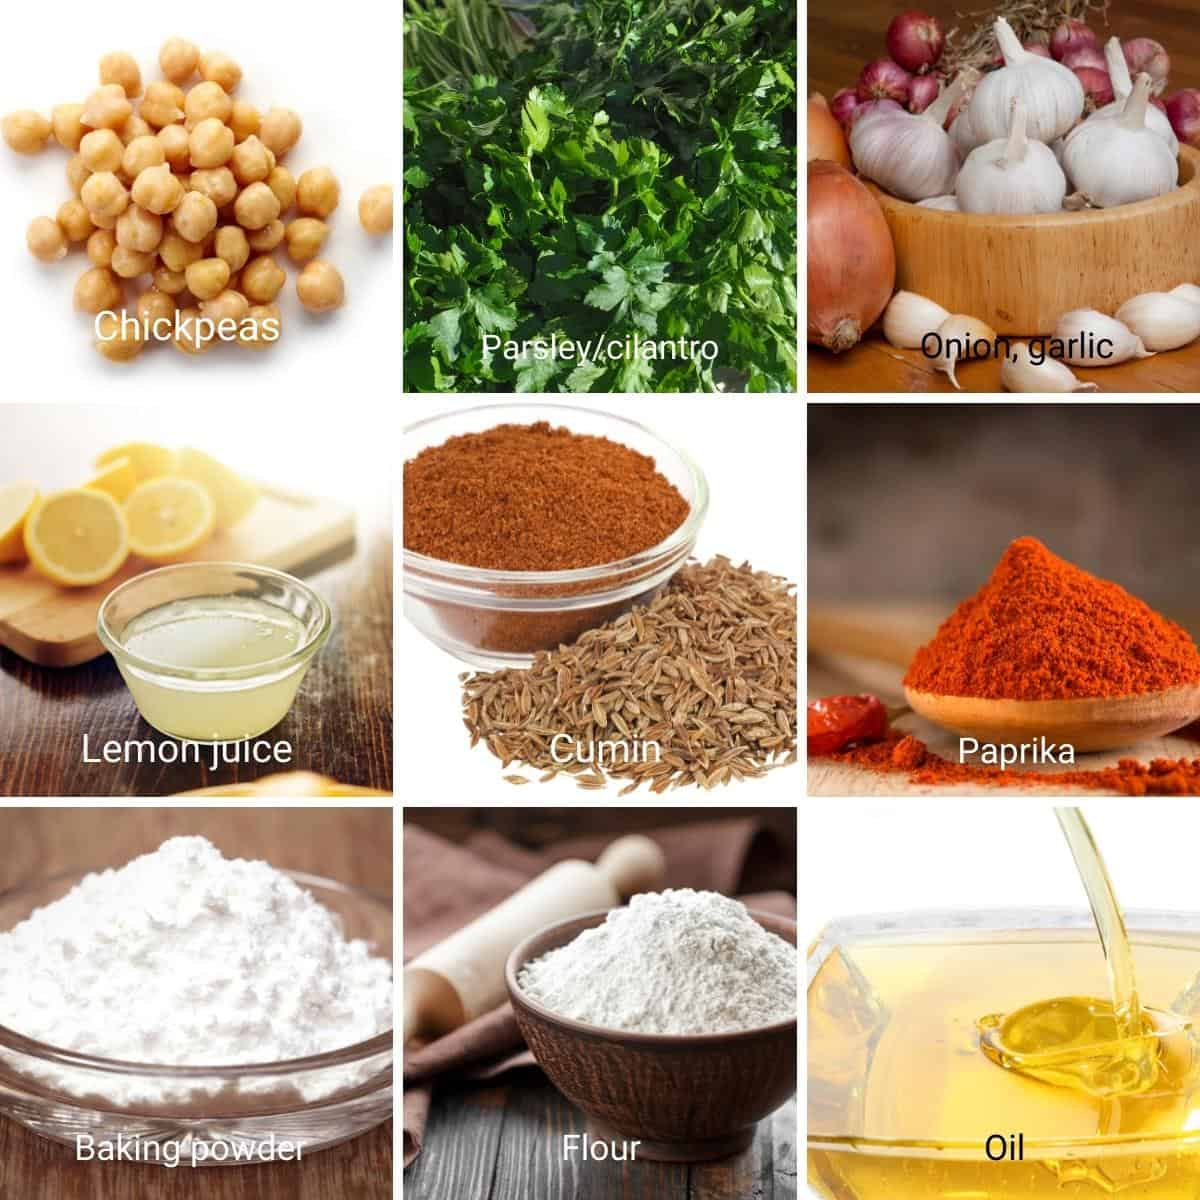 Collage with Ingredients for falafel.